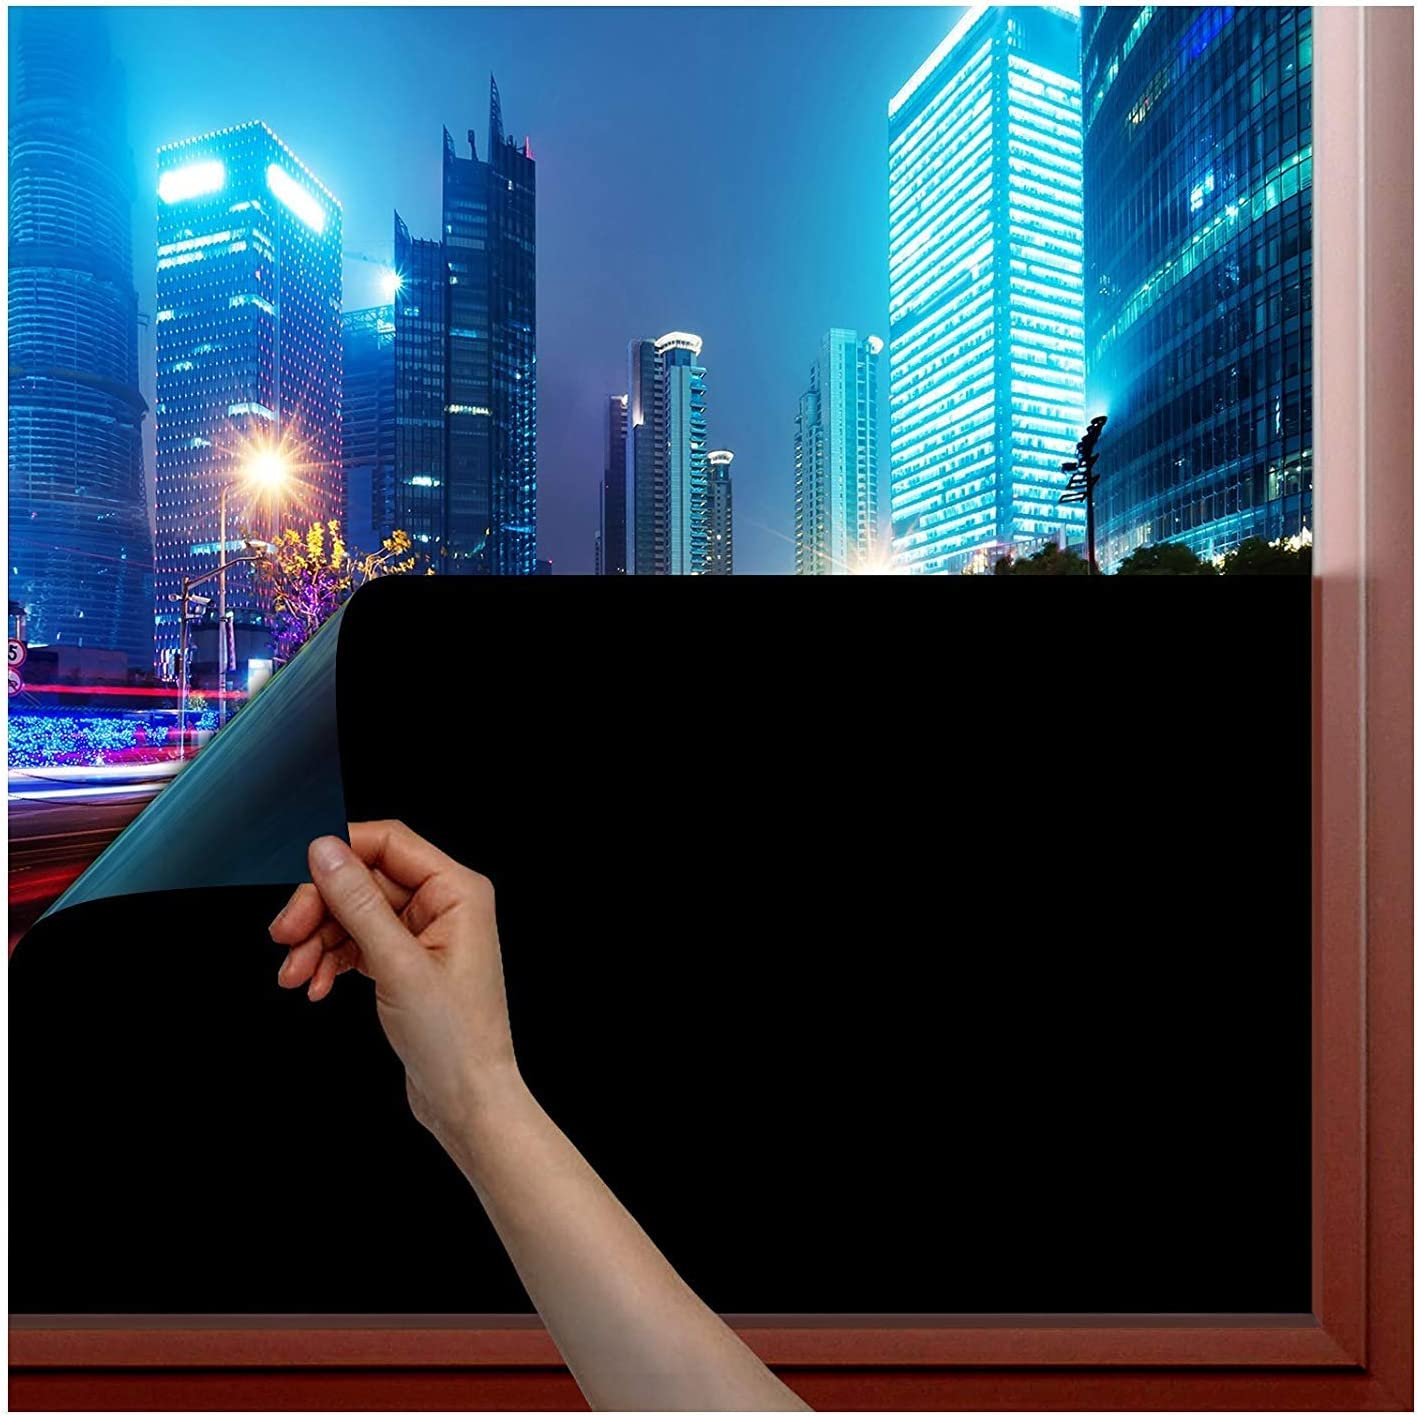 LOKHOM Blackout Window Film, Easy Removal, Anti UV 100% Light Blocking Frosted Window Privacy Film, Self-Adhesive Room Darkening Static Cling Window Tint for Home/Office(17.7inch x 6.5feet)